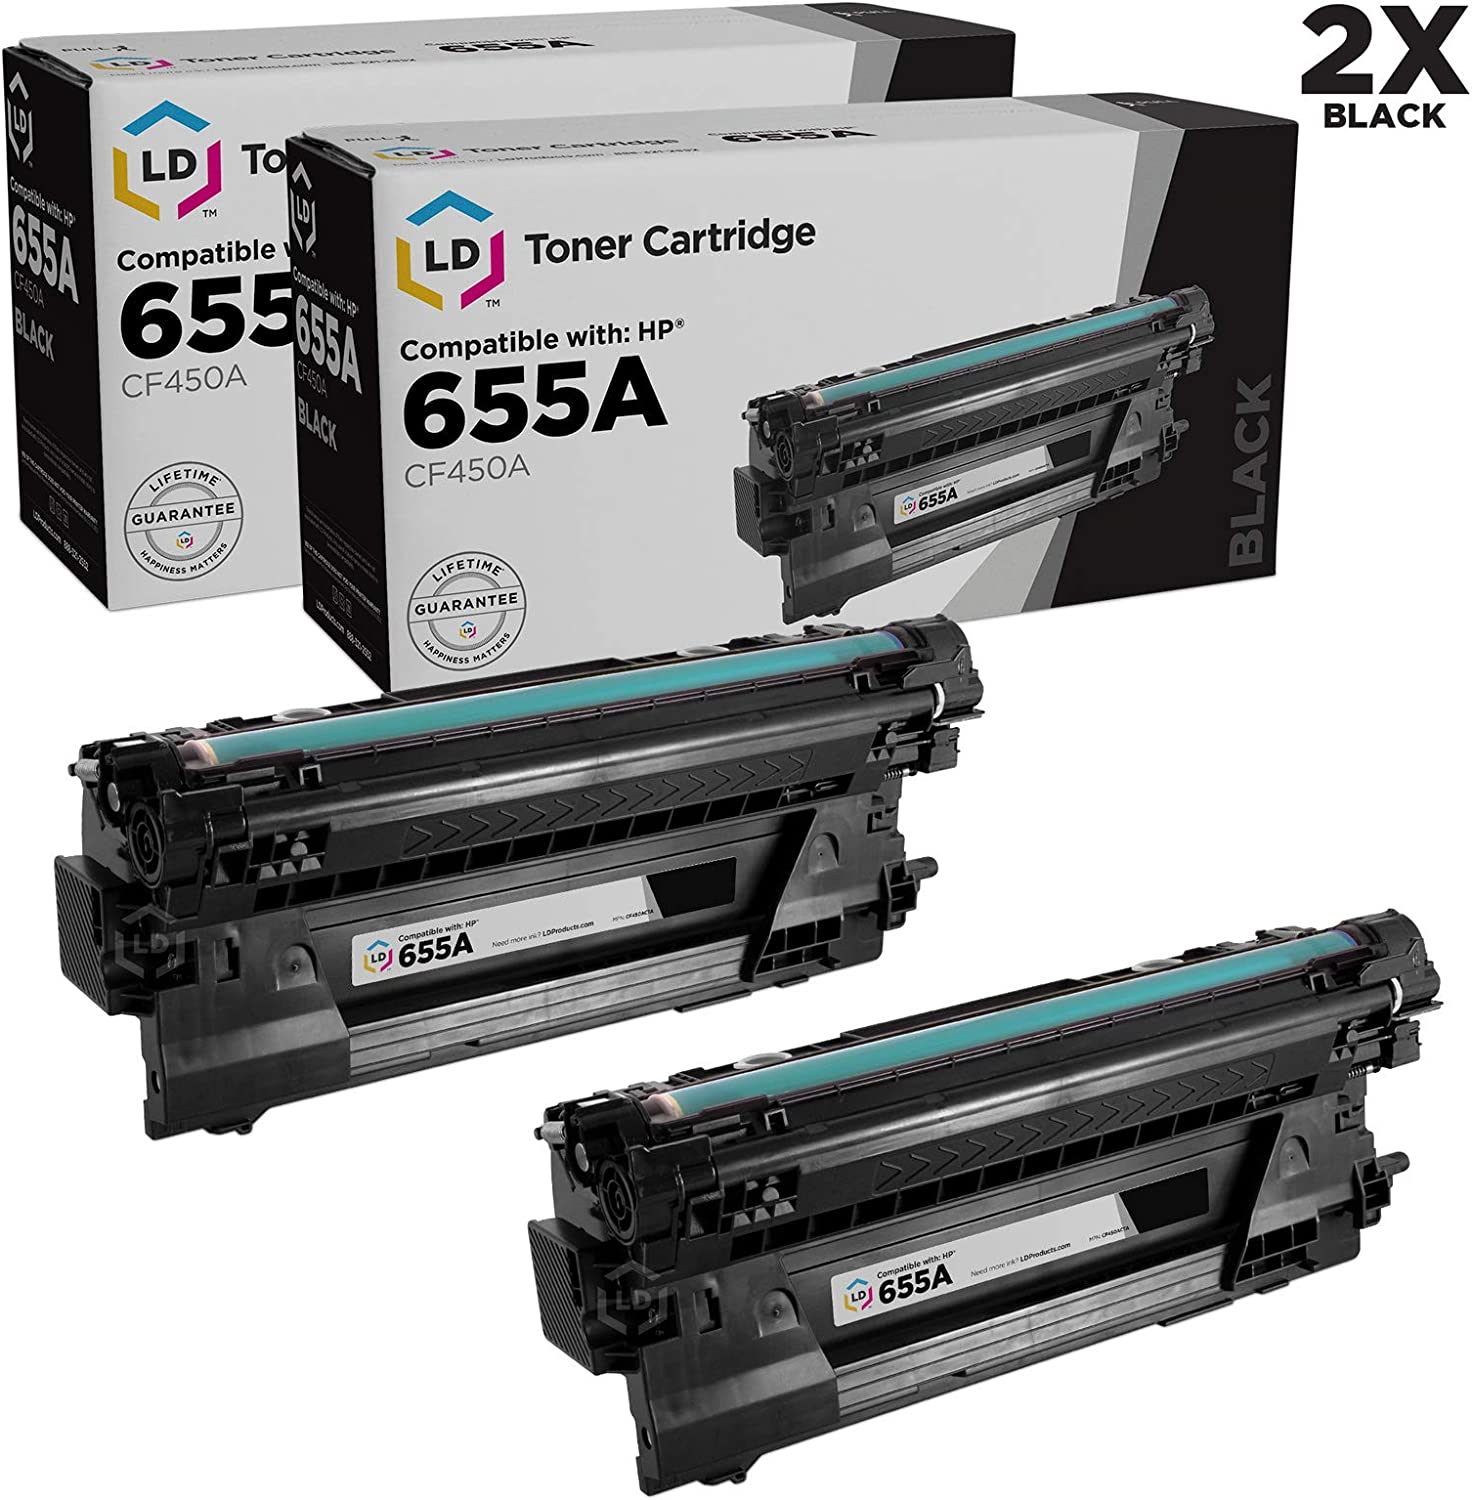 LD Compatible Toner Cartridge Replacements for HP 655A CF450A (Black, 2-Pack)